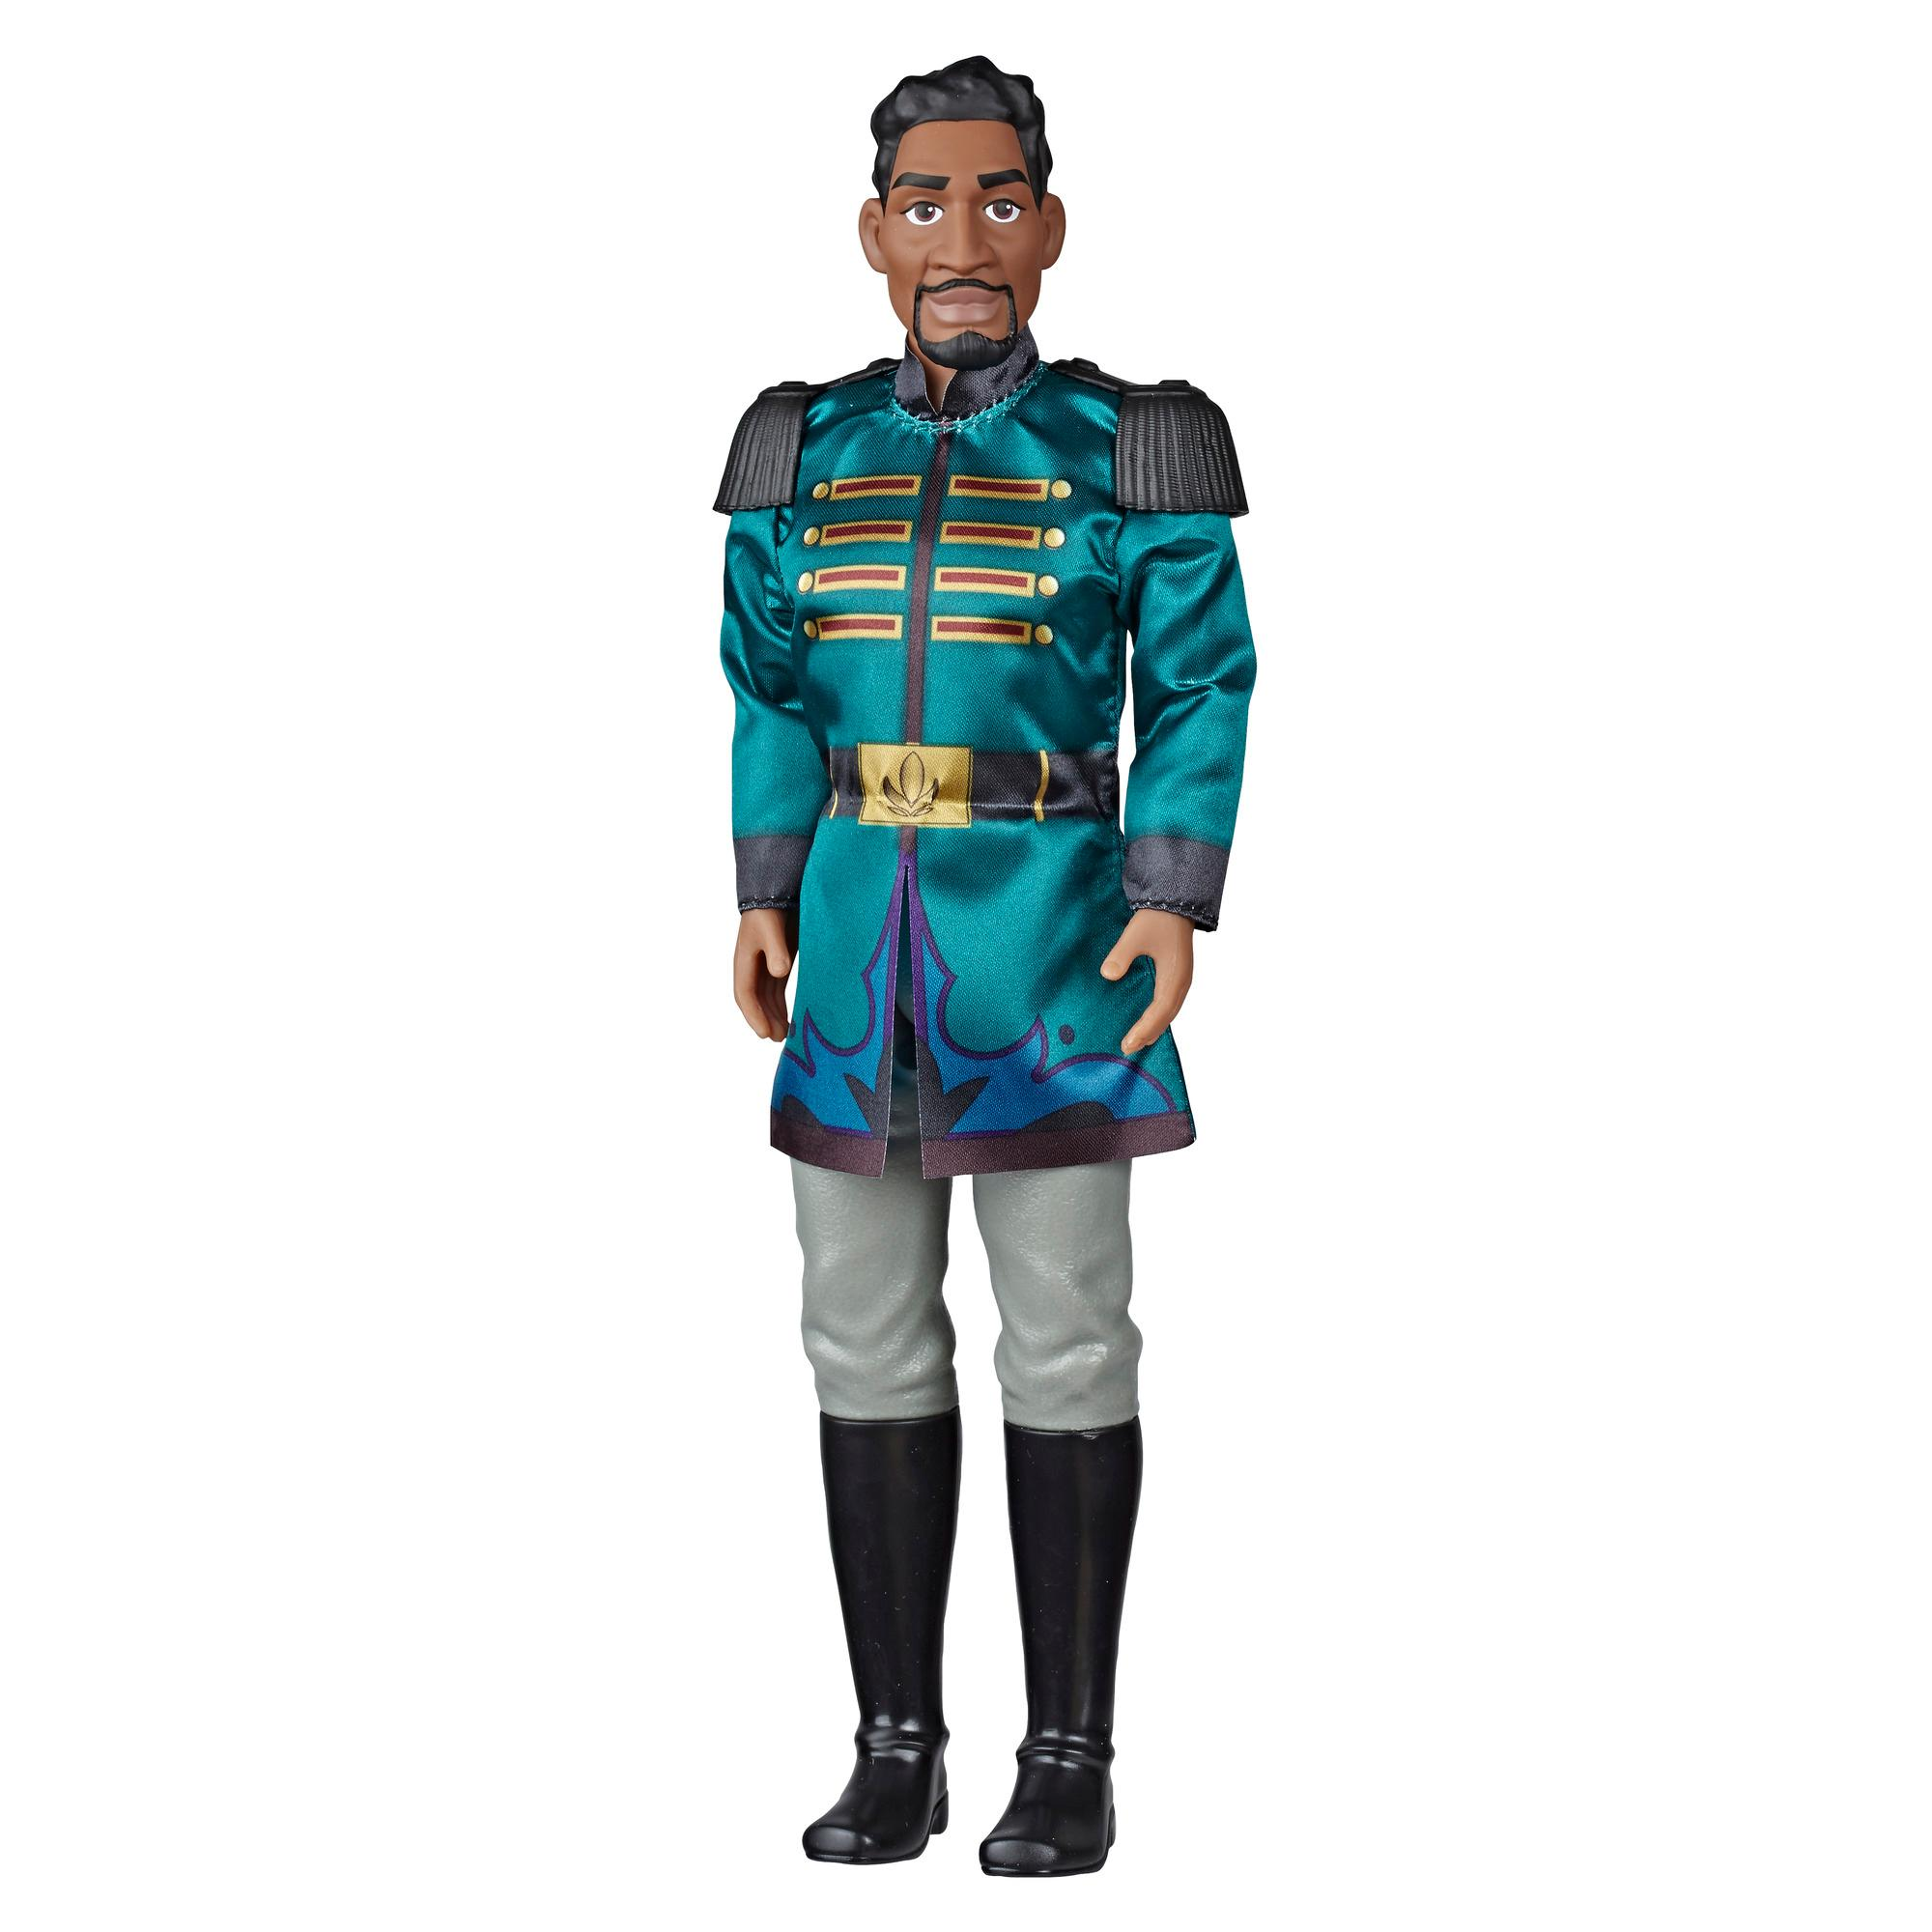 Disney Frozen Mattias Fashion Doll With Removable Shirt Inspired by the Disney Frozen 2 Movie - Toy for Kids 3 Years Old and Up